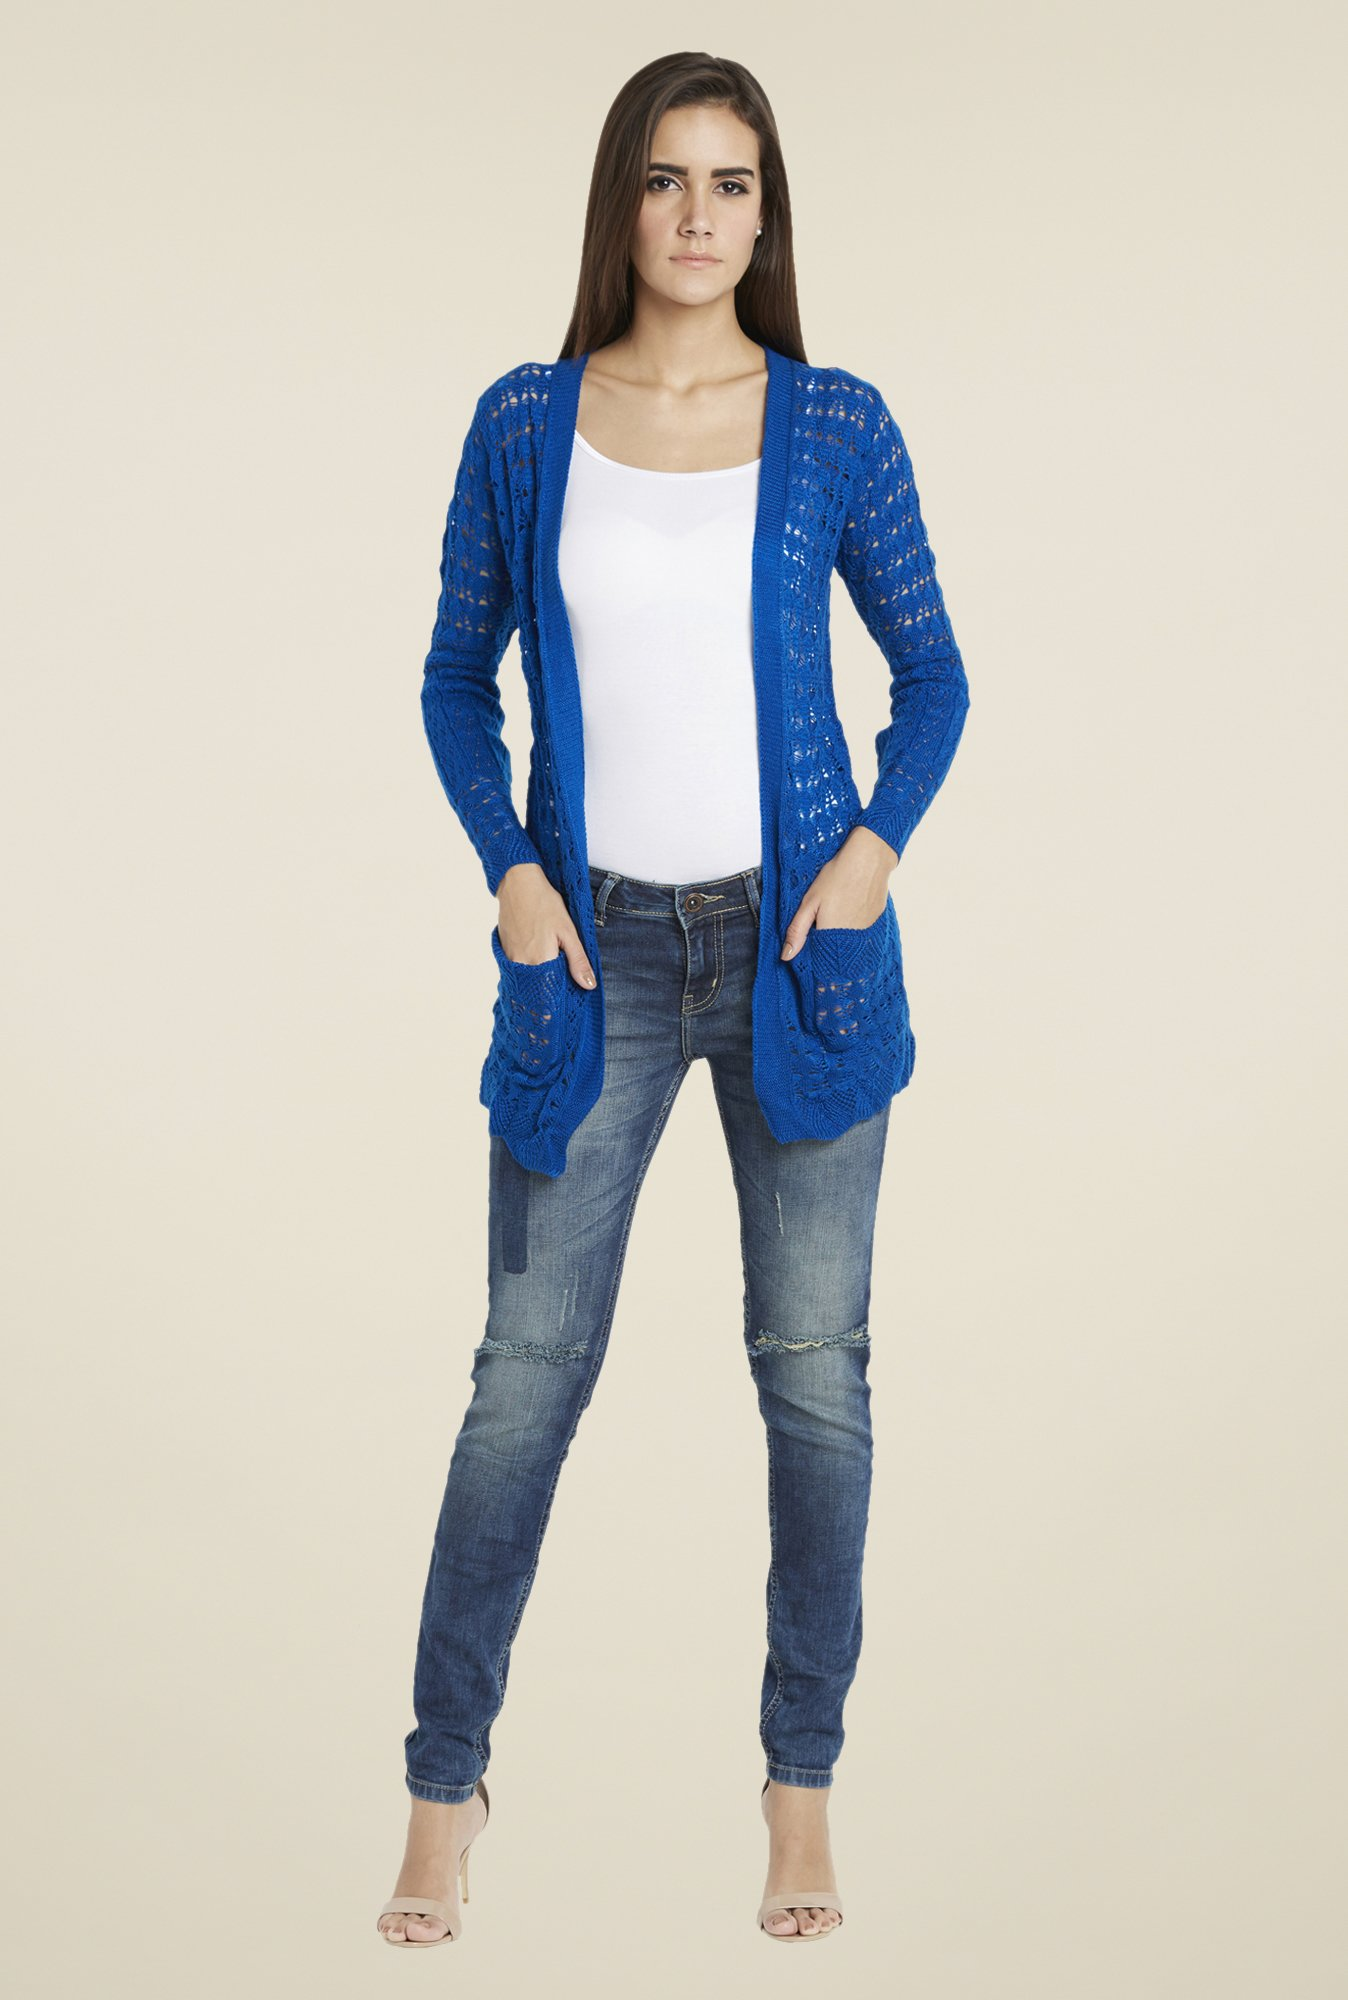 Globus Blue Lace Shrug